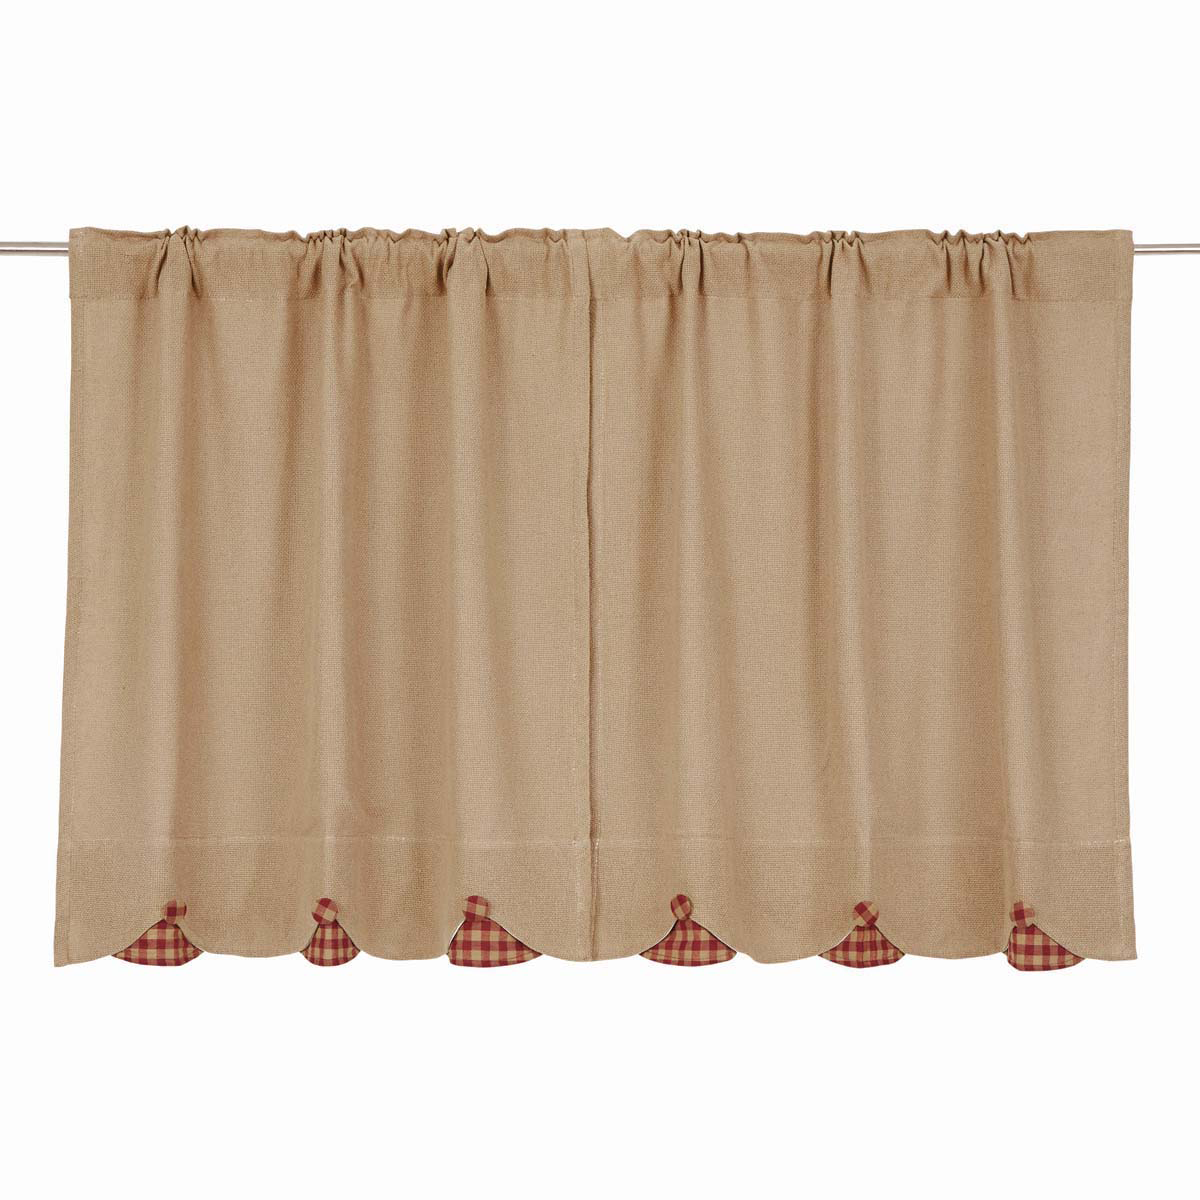 BURLAP NATURAL Tier w/Burgundy Check - Set of 2 - 36x36 - Farmhouse - VHC Brands